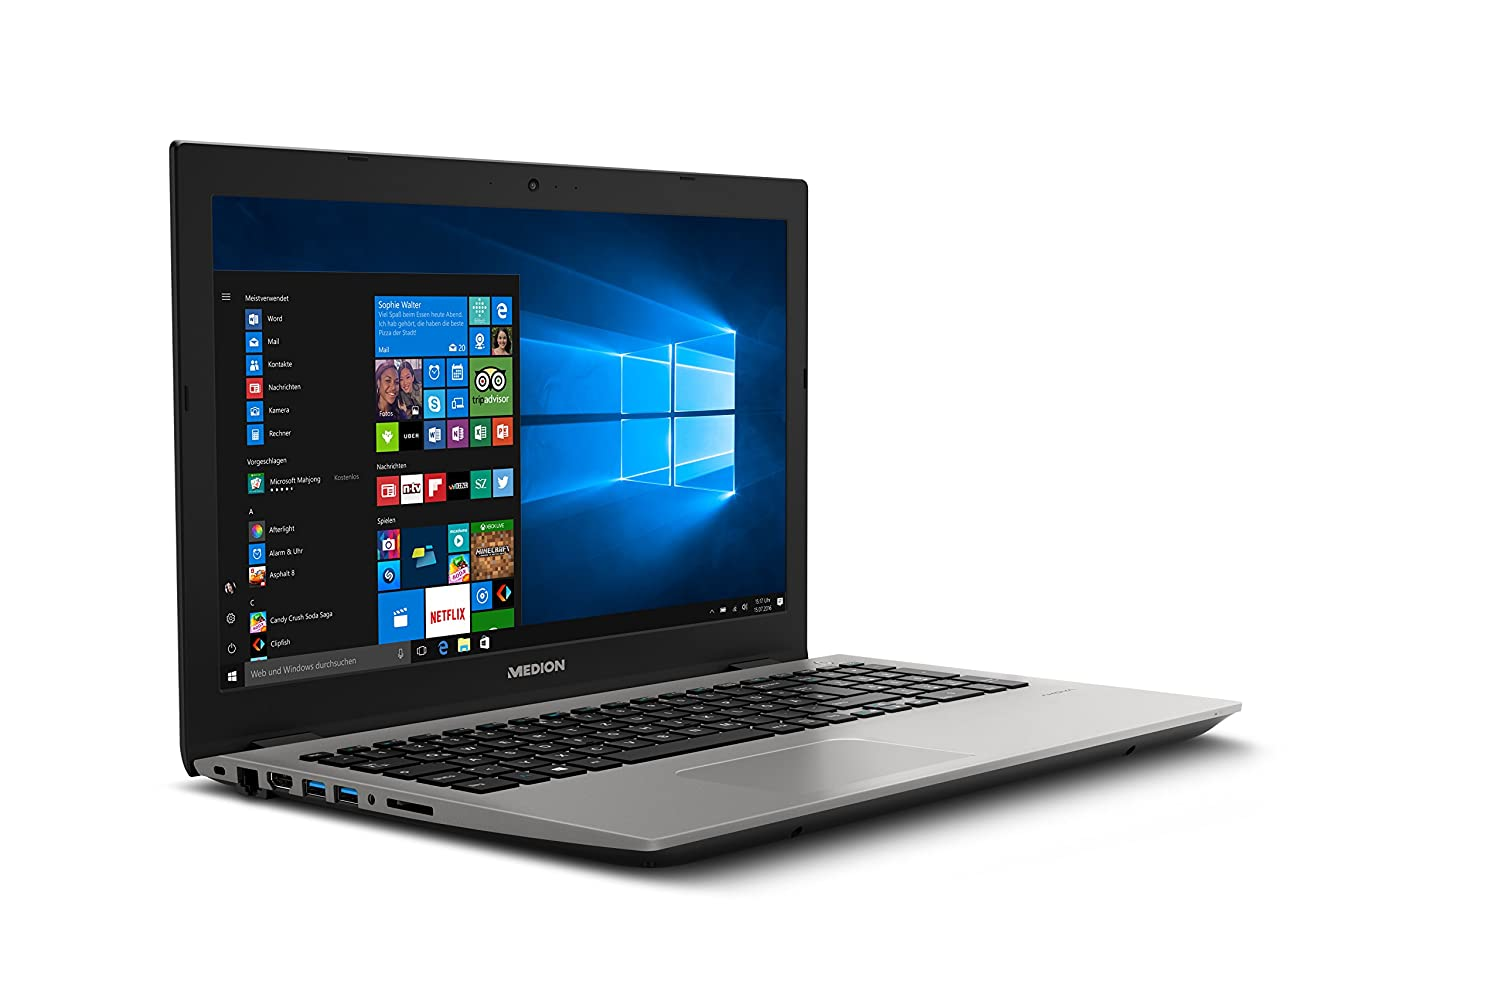 MEDION P6687 - Ordenador portatil 15.6 FullHD (Intel Core i5, 8GB RAM, 256GB SSD, MX150 2GB, Windows 10) gris: Medion: Amazon.es: Electrónica